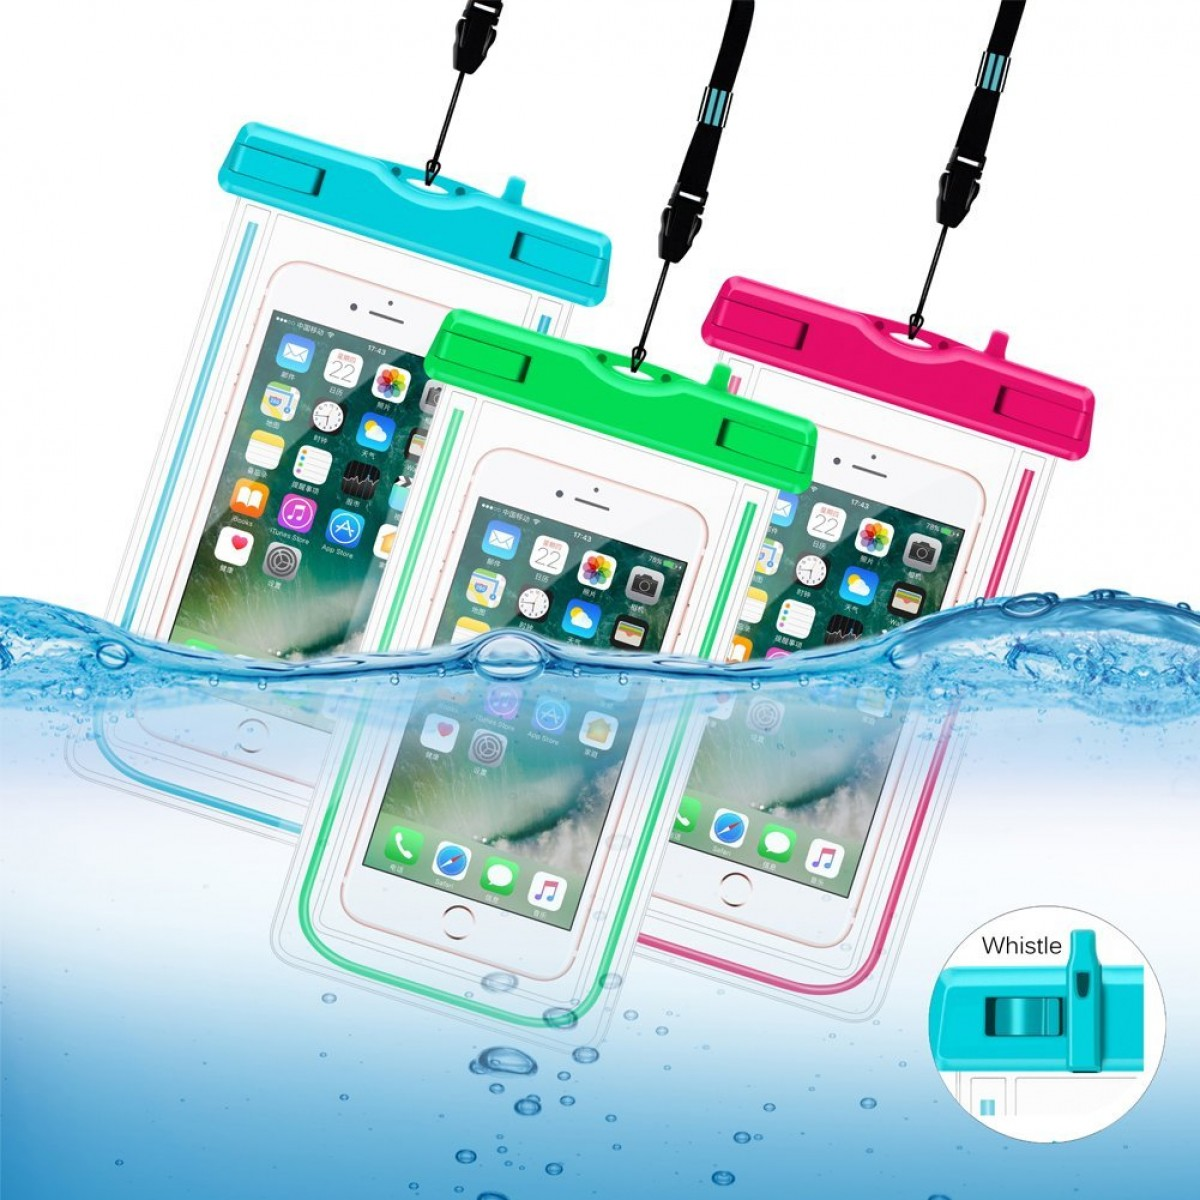 sale retailer a8744 a0089 Senbor Waterproof Case 3Pack Universal Cell Phone Dry Bag Pouch For IPhone  8 7 Plus 6s 6s Plus 5s Se Galaxy S8 S7 Edge Note 4 3 LG G6 G5 G4 HTC One X